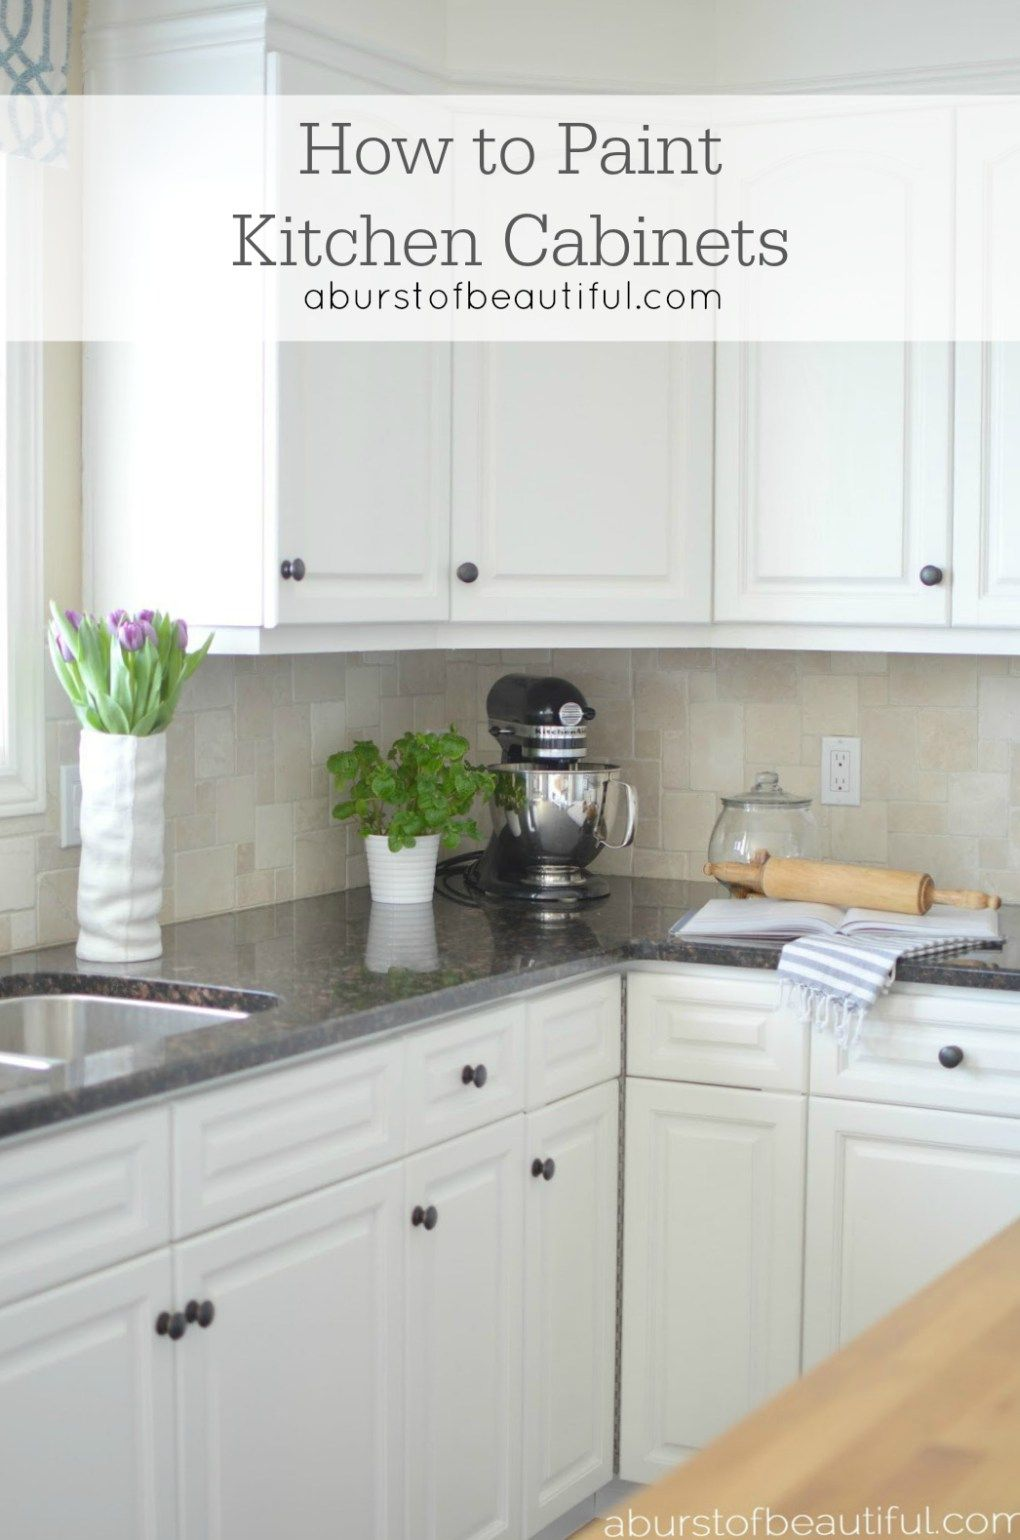 How To Paint Kitchen Cabinets A Burst Of Beautiful Painting Kitchen Cabinets Kitchen Paint Kitchen Cabinets Parts